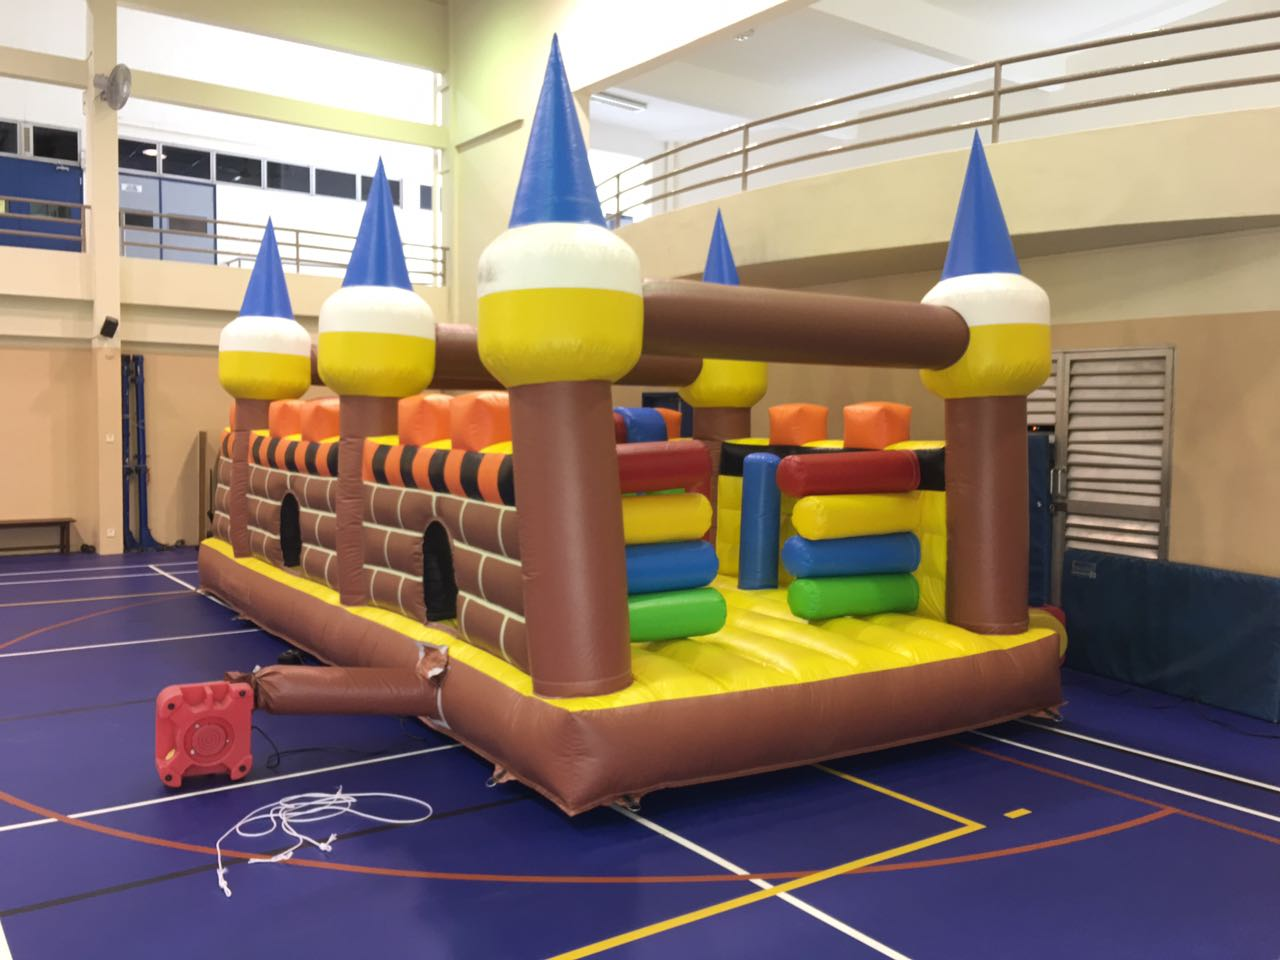 Obstacle Course Bouncy Castle 4 x 8 x 3.5 (ht)m